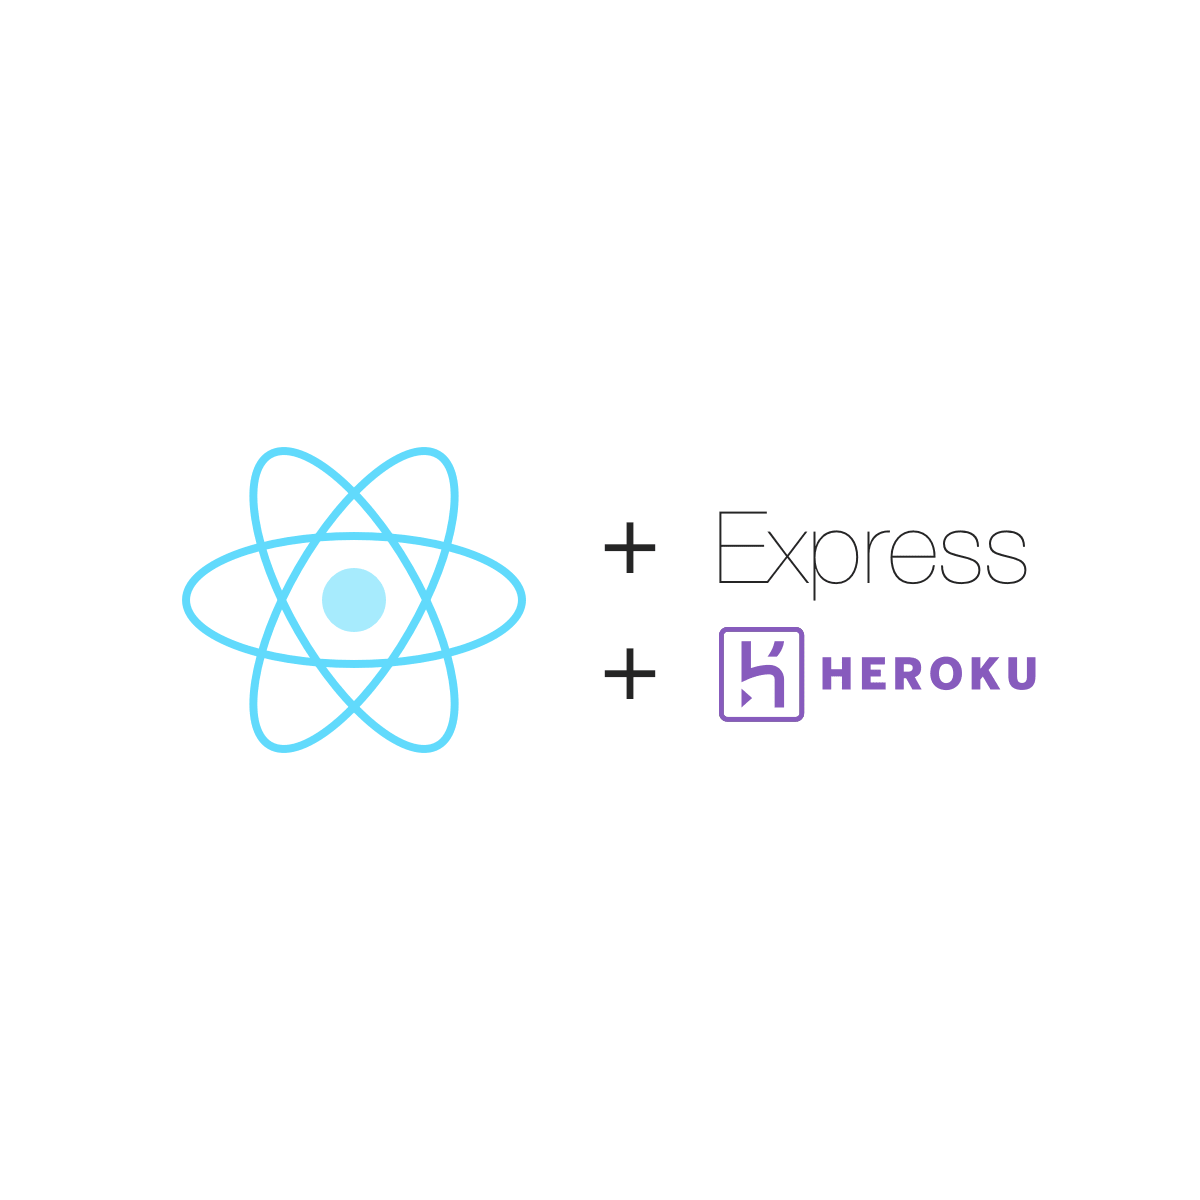 Deploy React and Express to Heroku